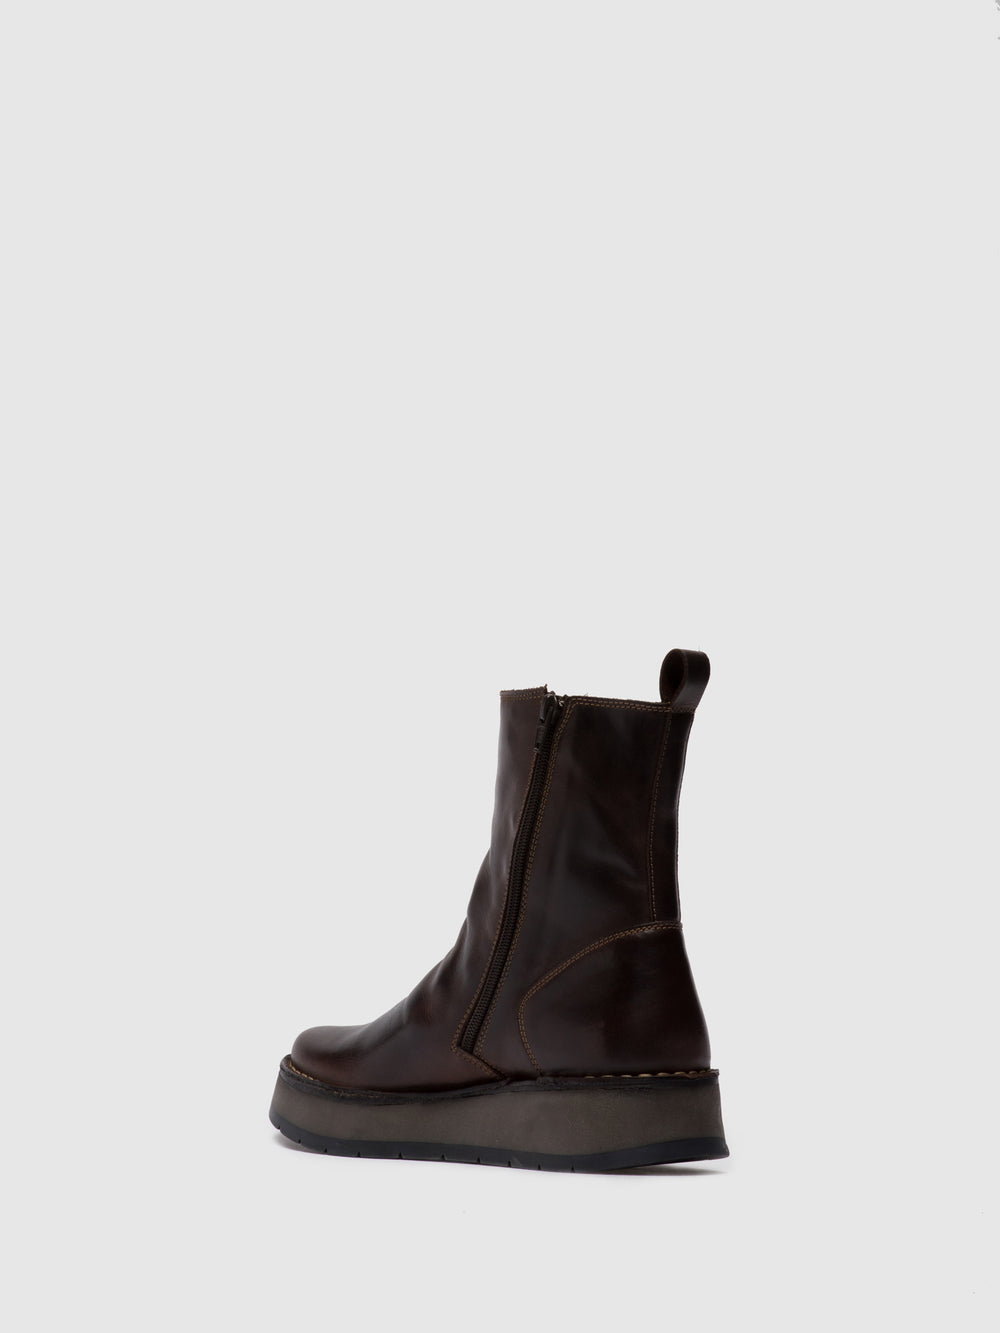 Zip Up Ankle Boots RENO053FLY RUG DK. BROWN